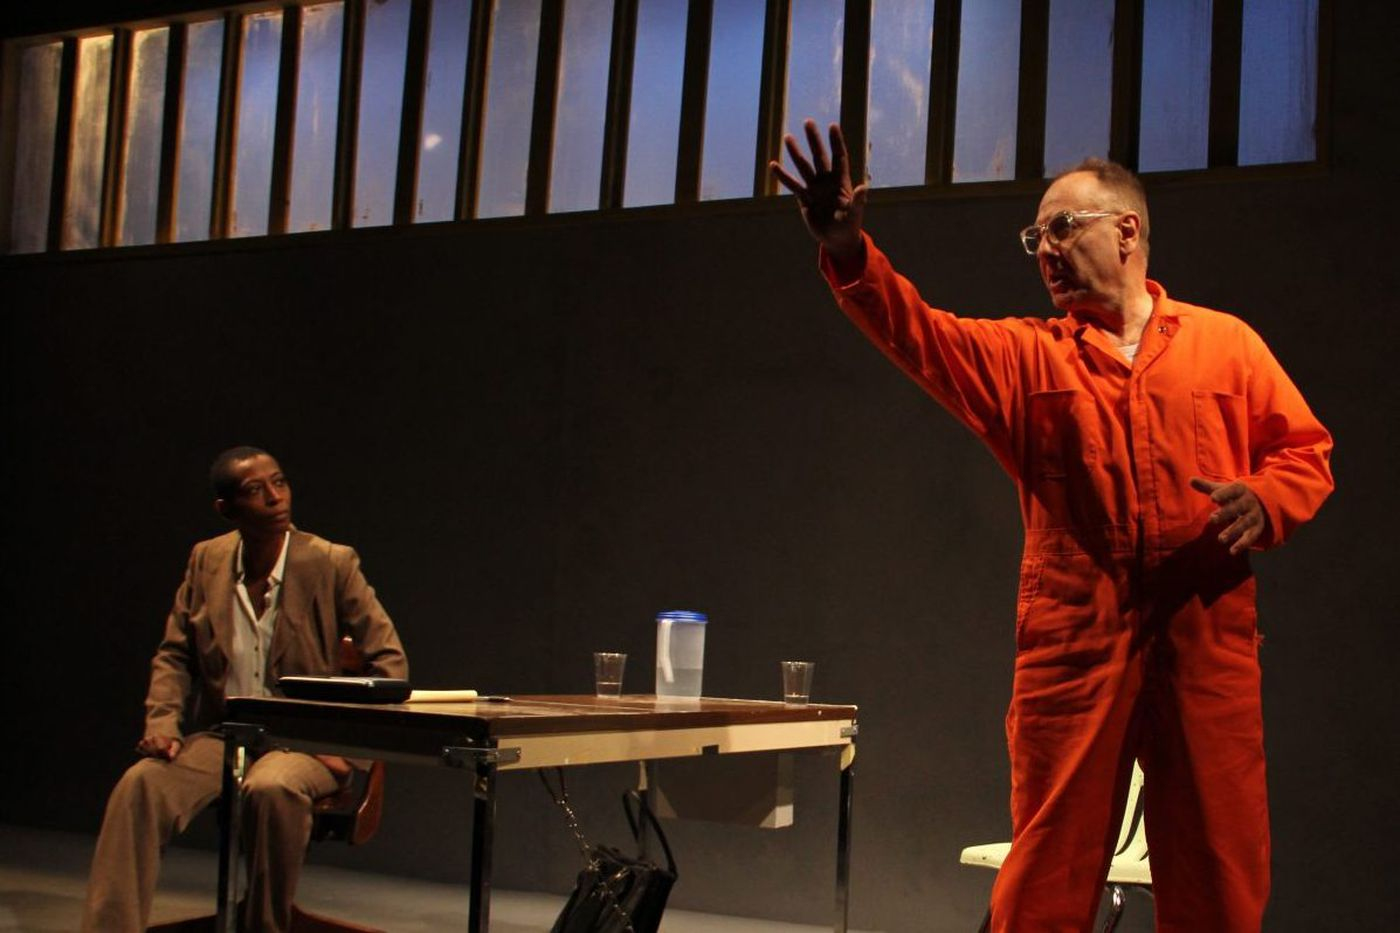 EgoPo's 'A Human Being Died That Night': An intimate struggle of forgiveness and accountability